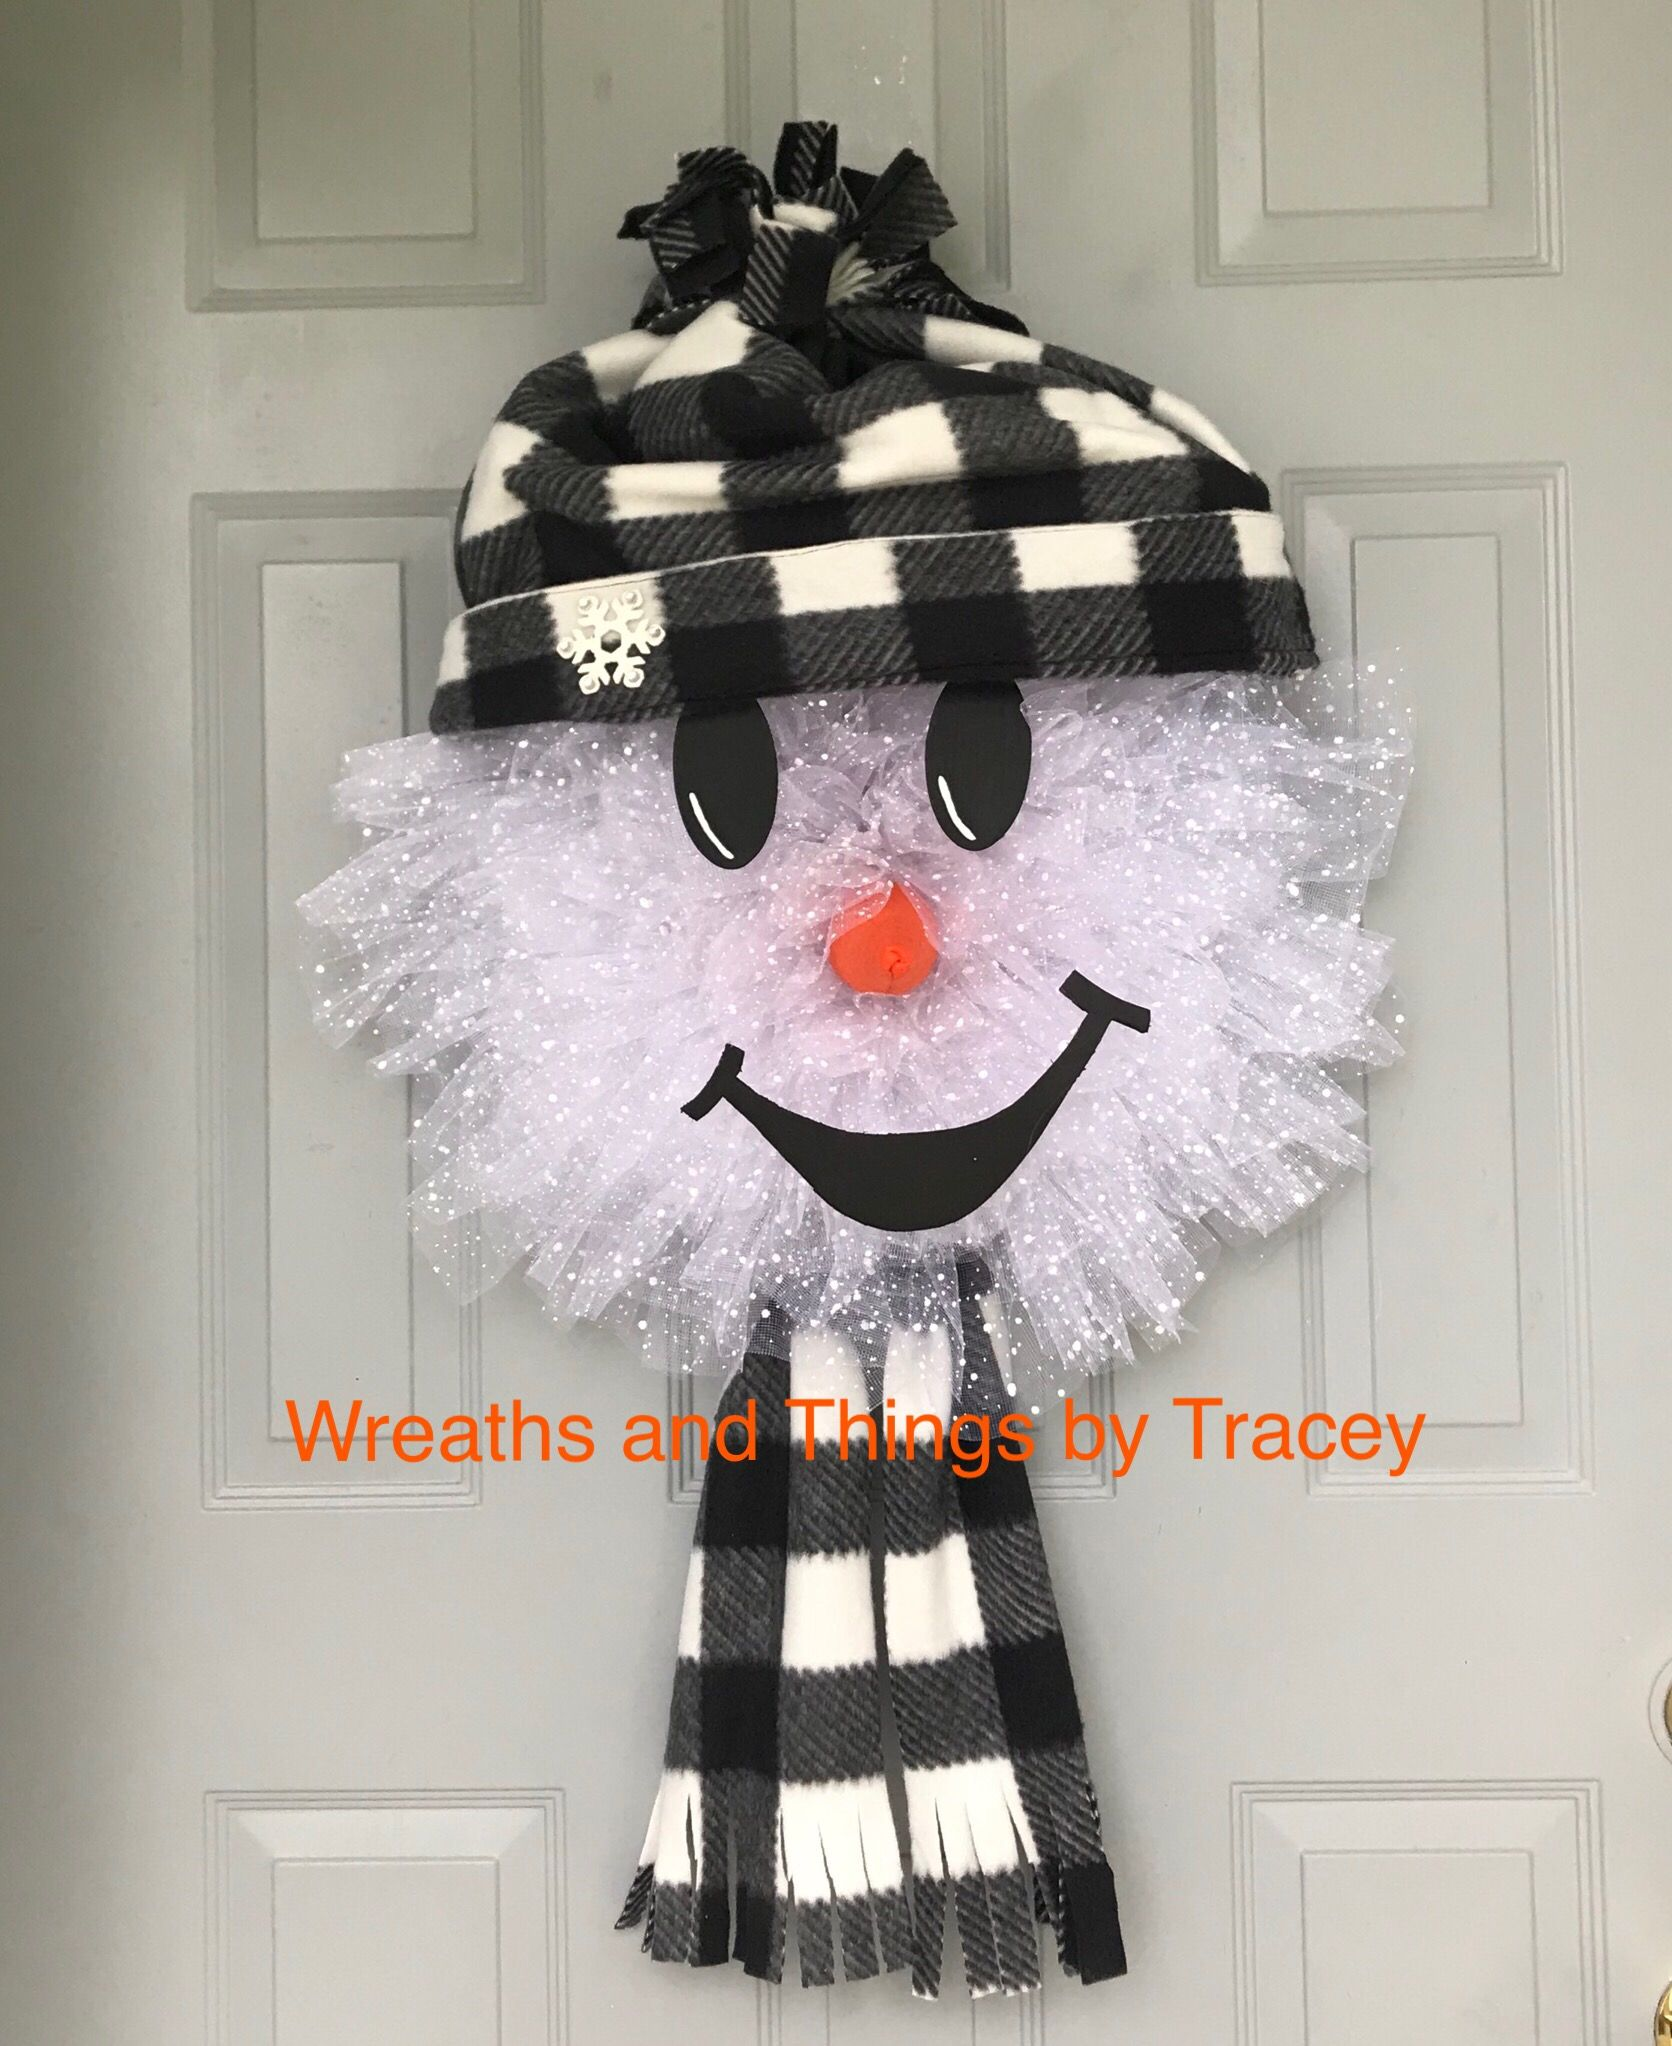 Mesh Snowman 2018 Wreaths and Things by Tracey